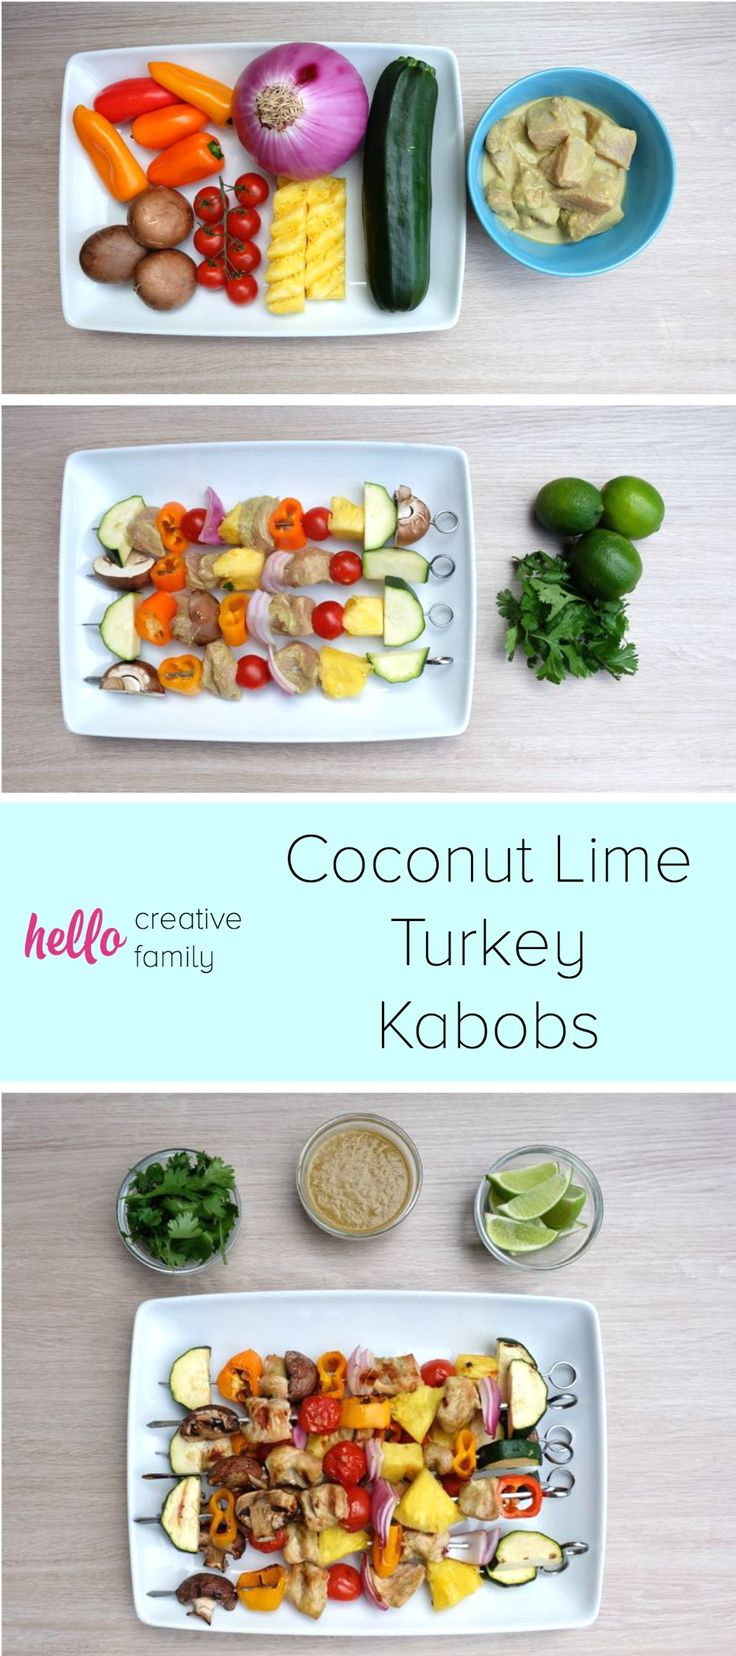 With flavors of lime, coconut, peanut and cilantro, this Coconut Lime Turkey Kabobs Recipe is a summer favorite. Throw it on the grill or BBQ and have a quick and easy dinner ready in minutes. Sure to be a family favorite.